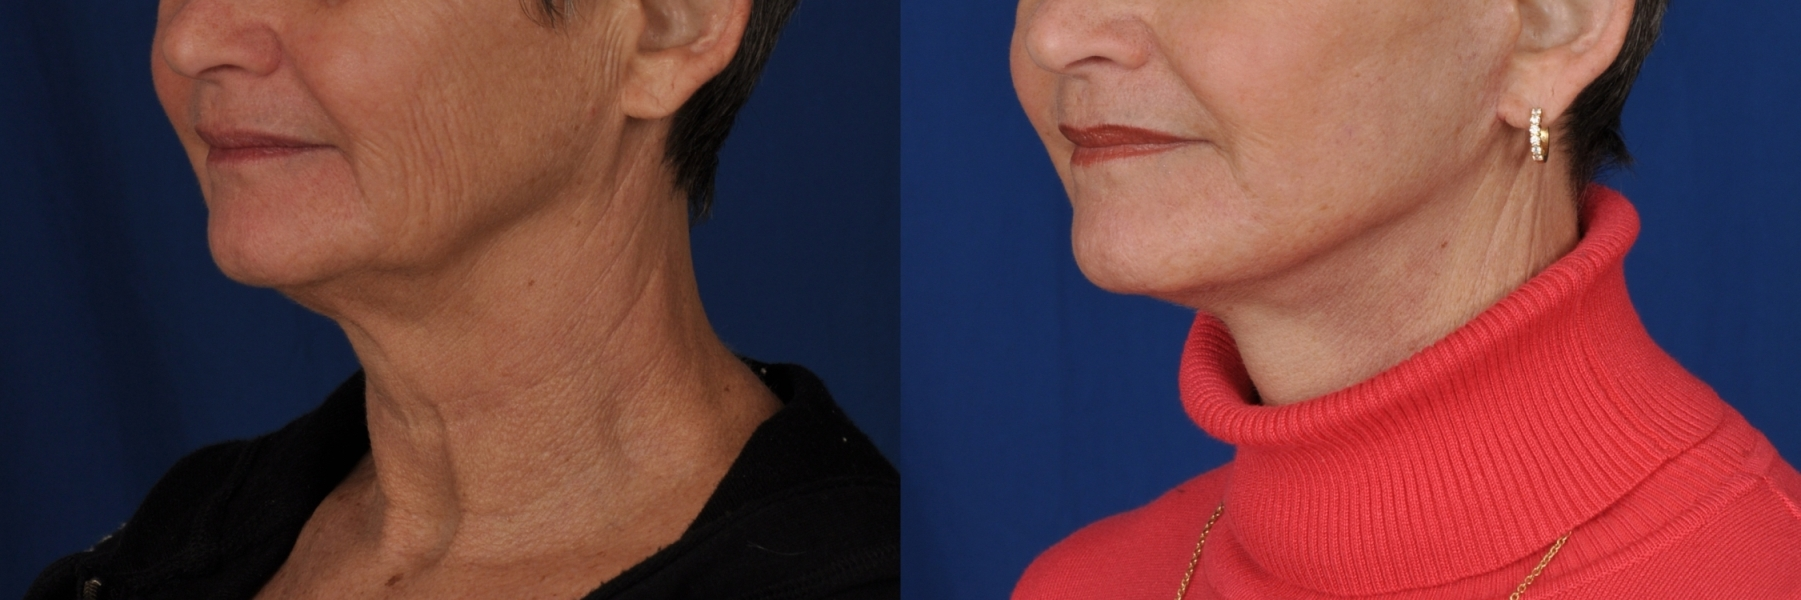 Face Lift - Patient Photo 3